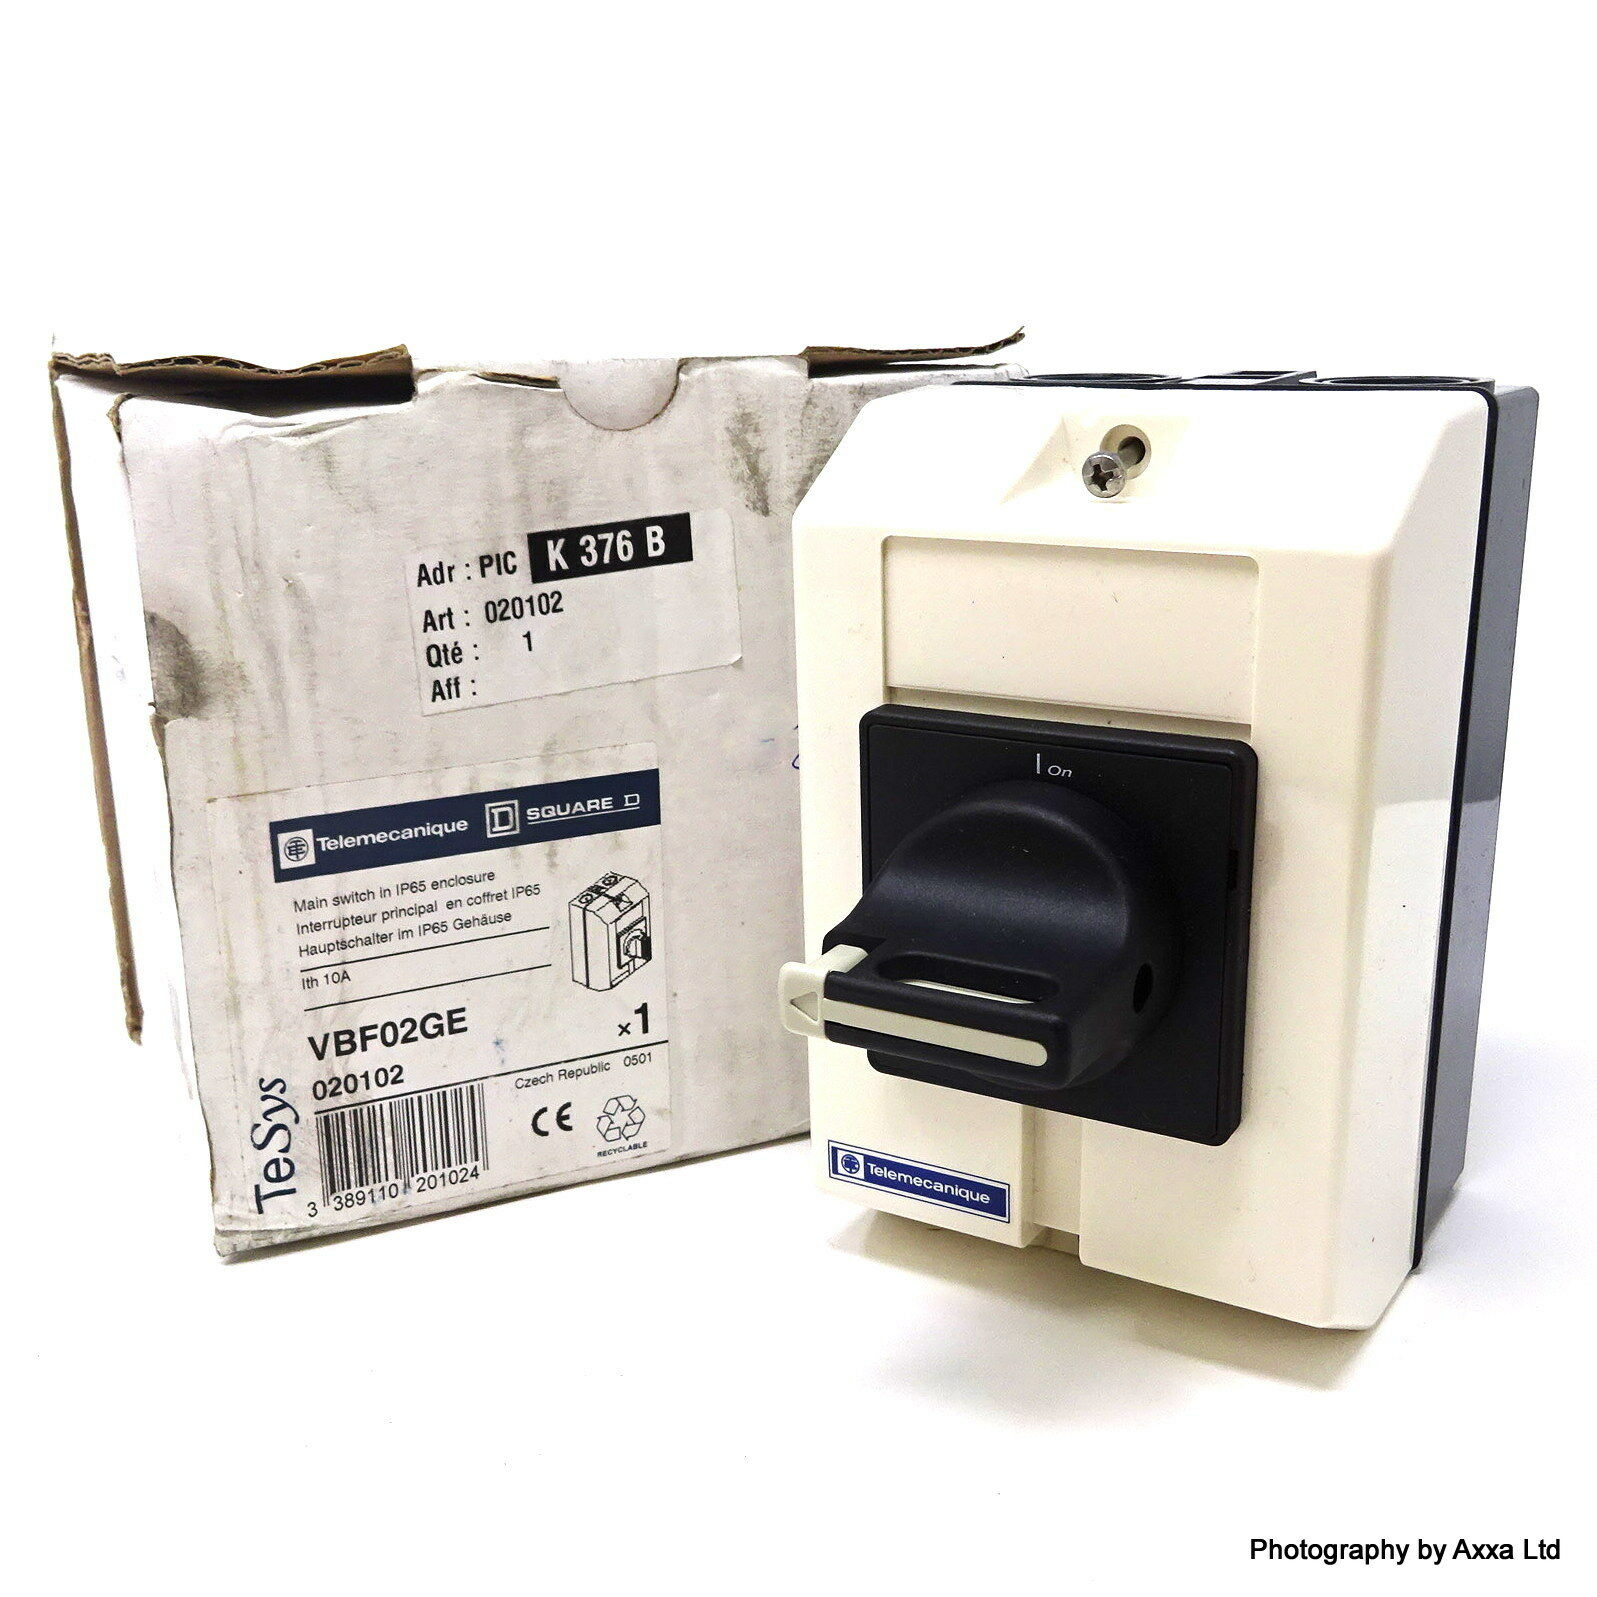 Telemecanique VCF1GE 25A 3Pole 11kw Emergency Stop//Main Switch In IP65 Enclosure